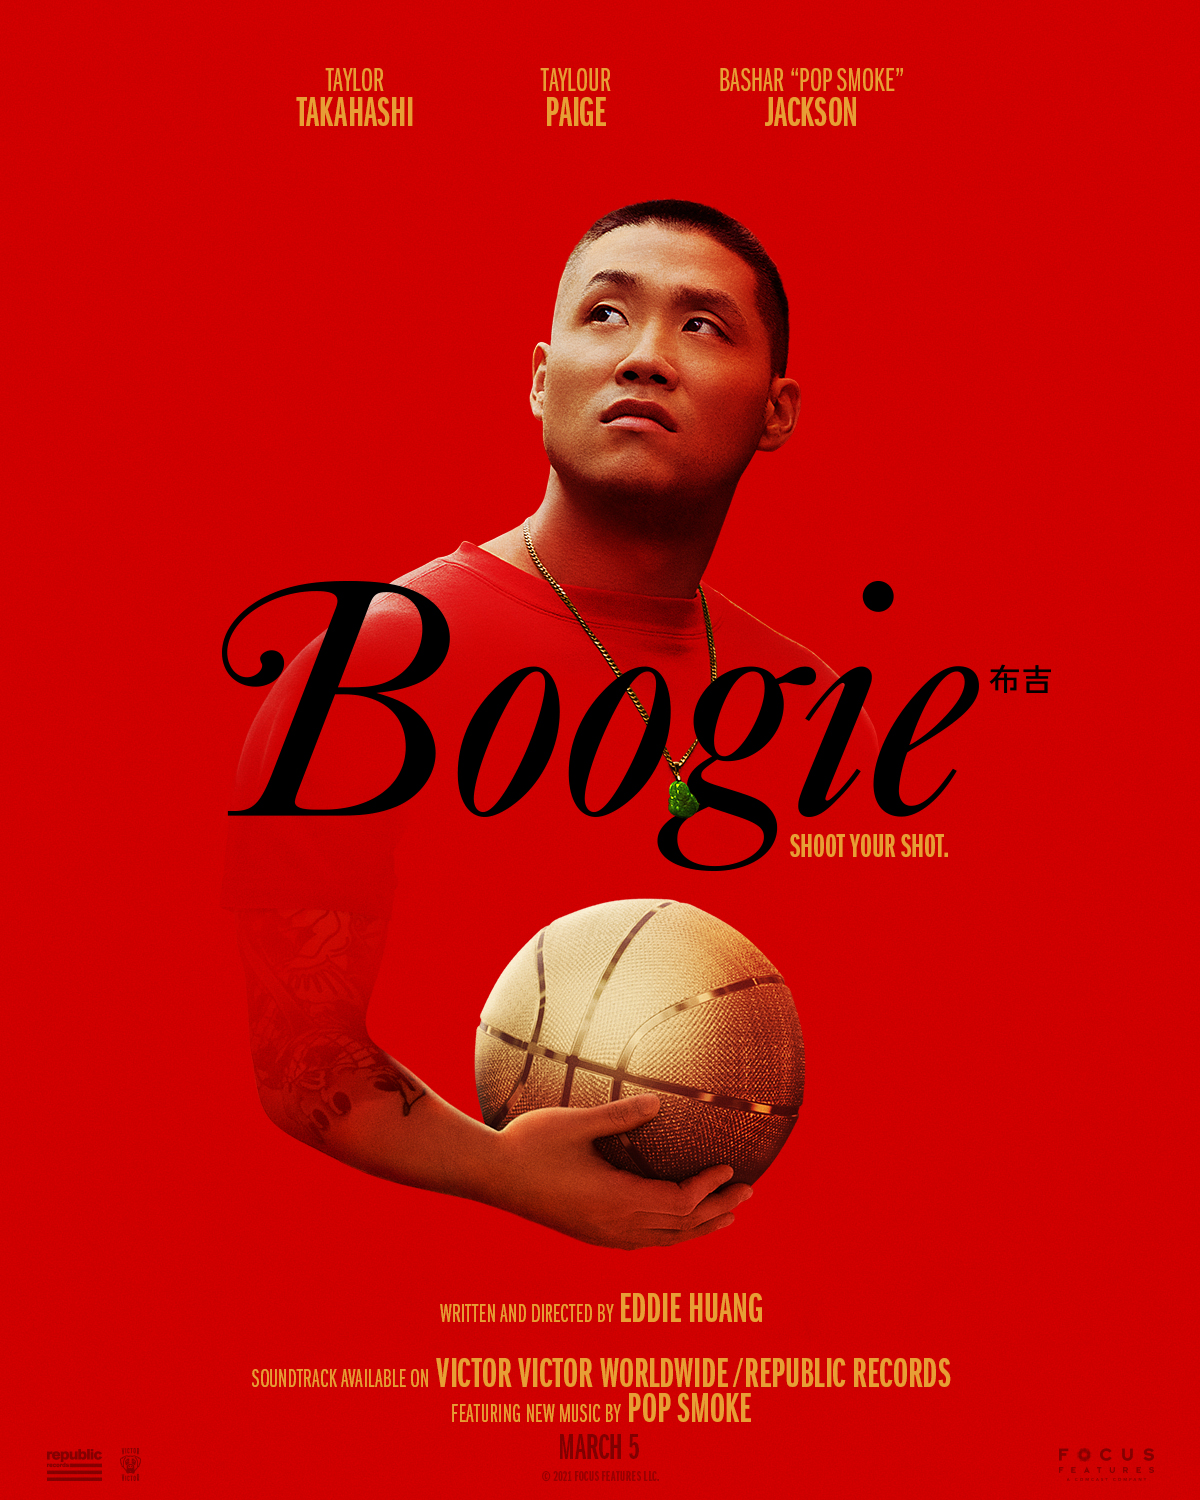 Complimentary Screening of BOOGIE: March 25